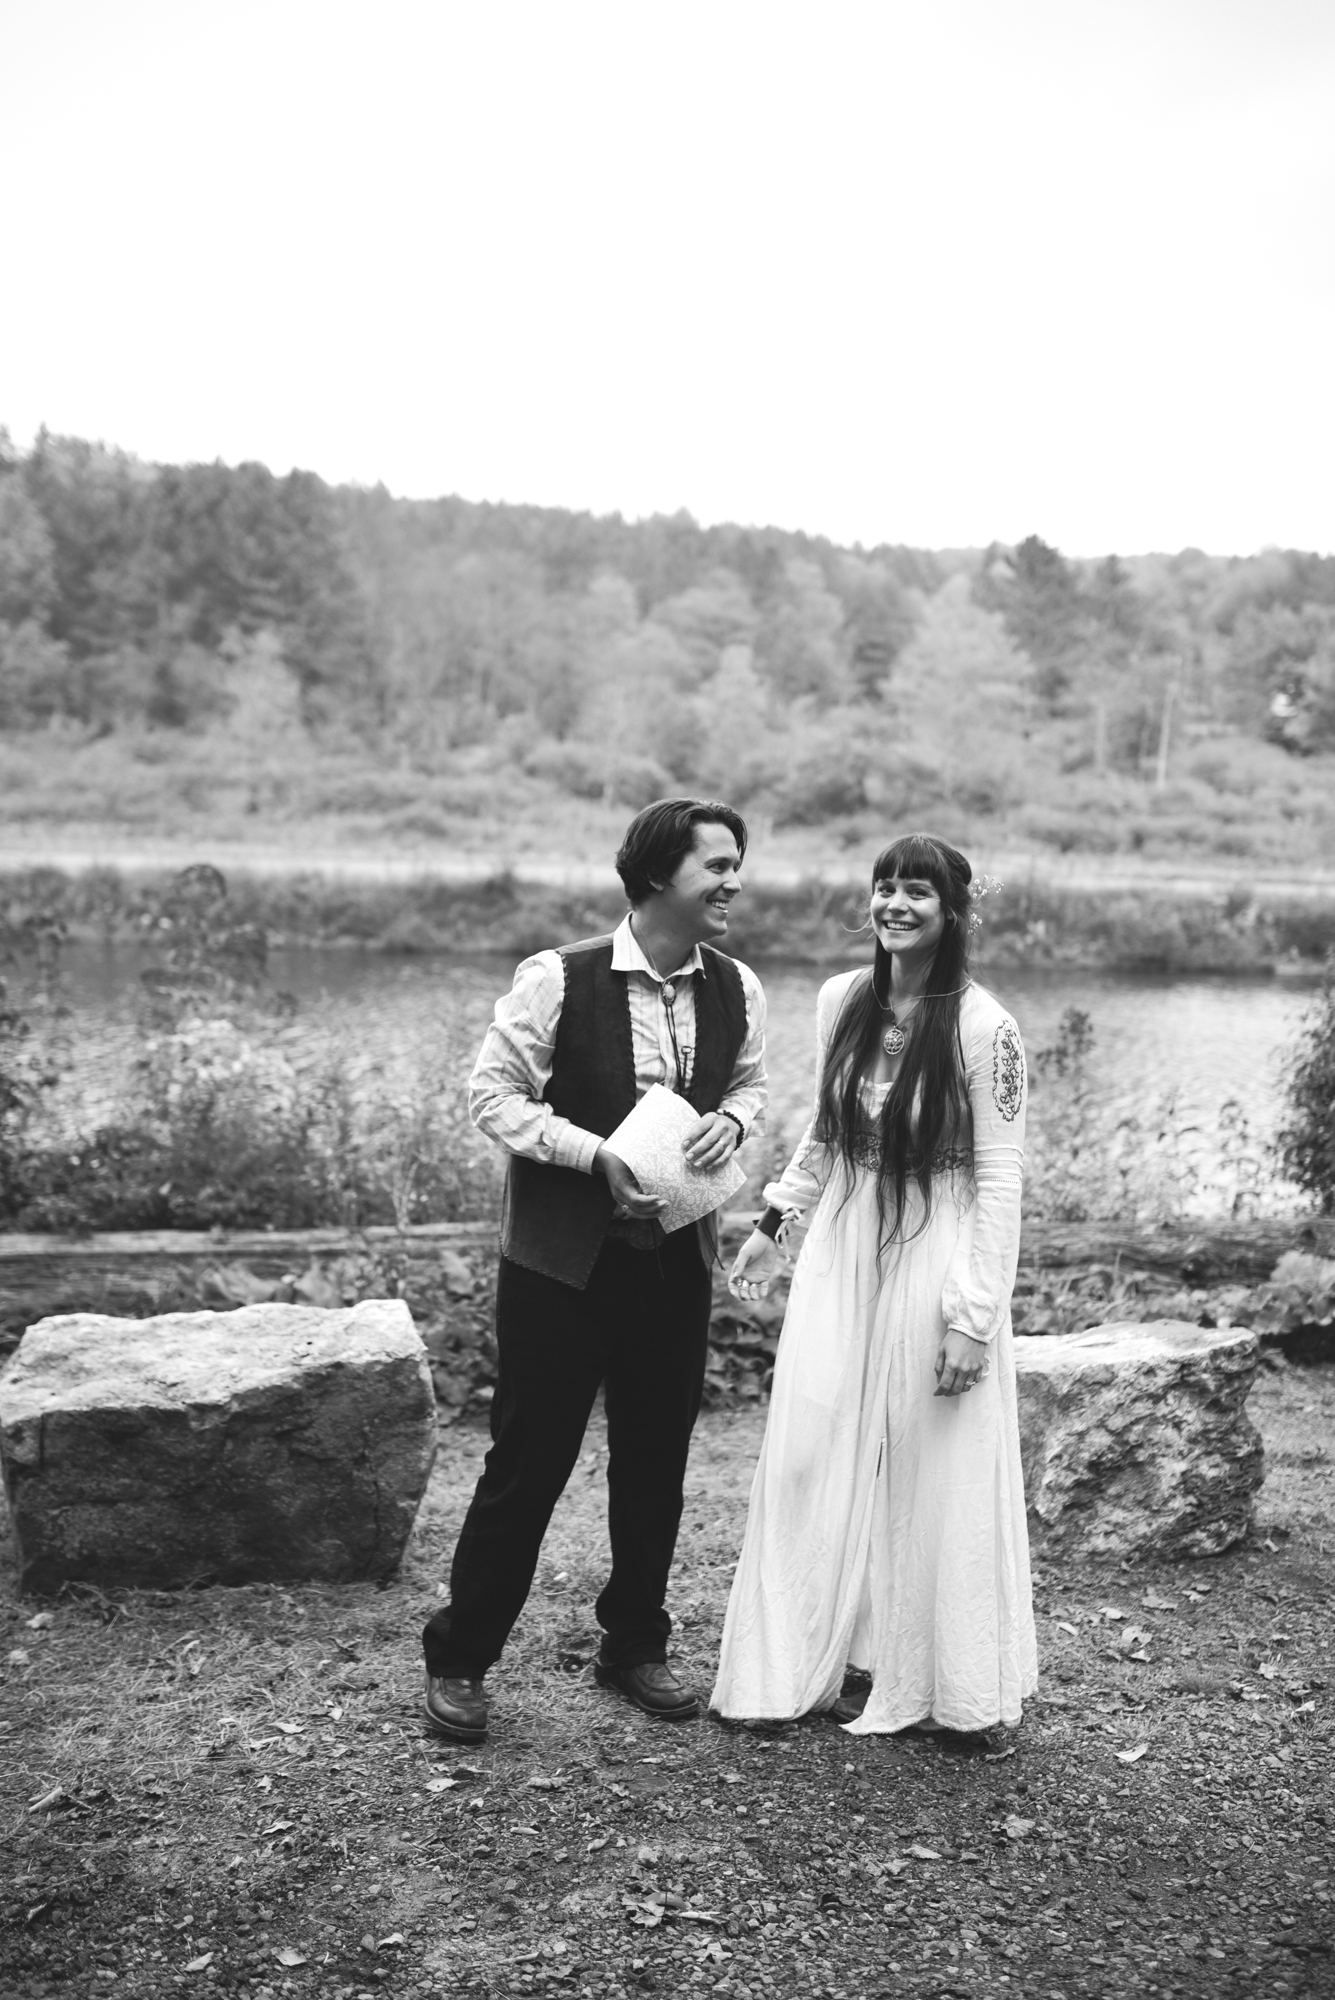 Mountain Wedding, Outdoors, Rustic, West Virginia, Maryland Wedding Photographer, DIY, Casual, Bride and groom laughing together, just married, black and white photo